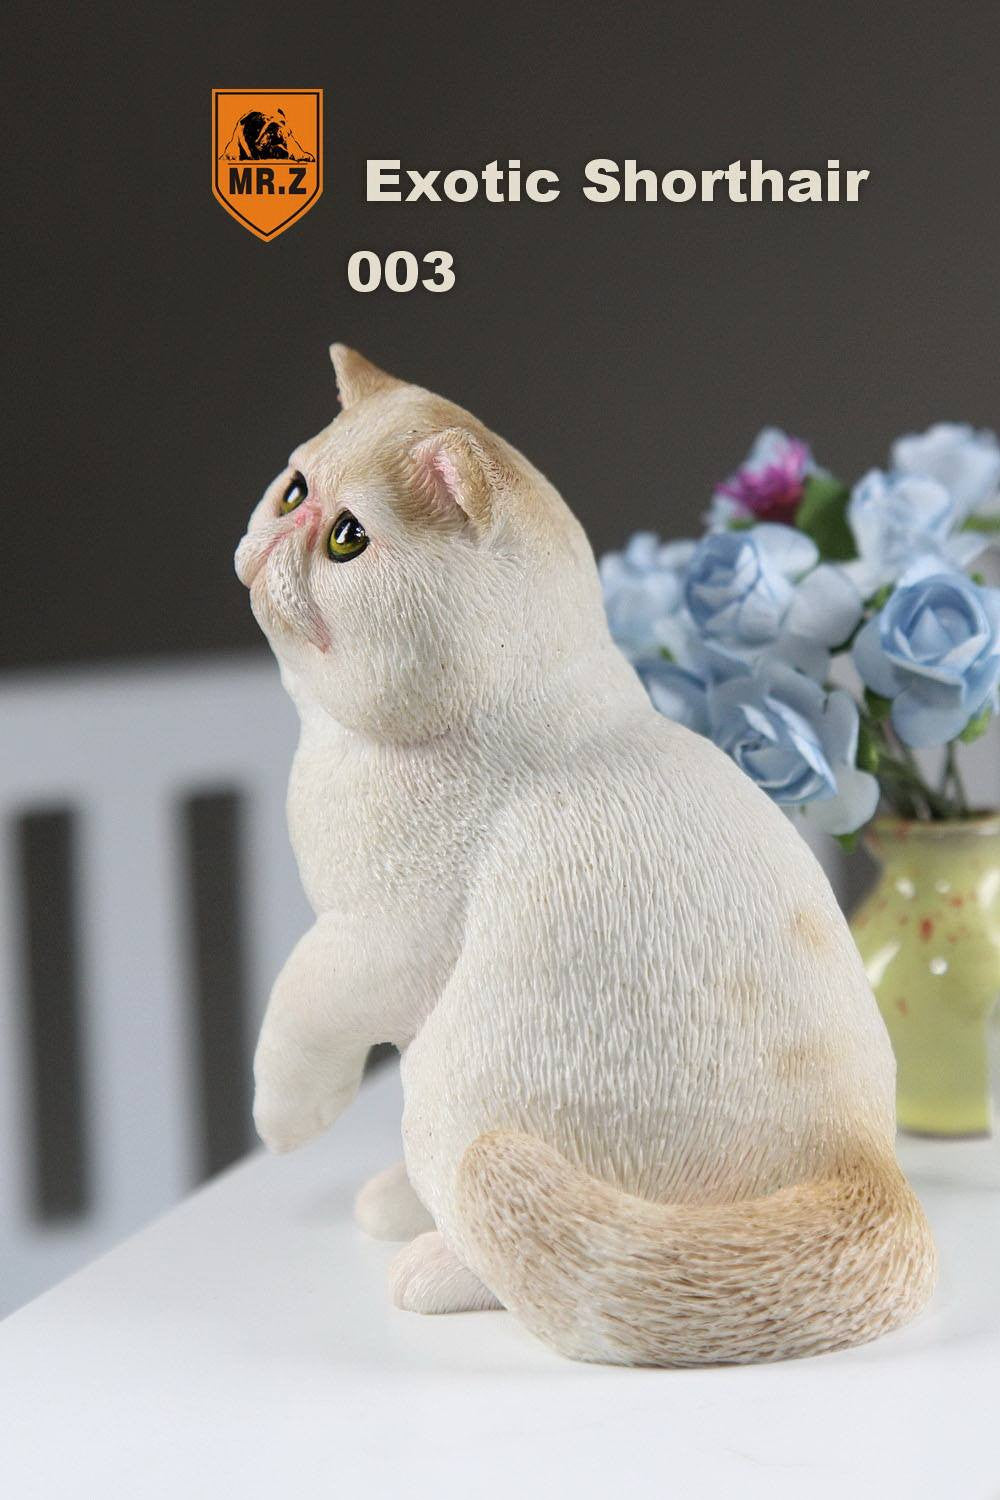 MR.Z - Real Animal Series No.8 - 1/6th Scale Exotic Shorthair Cat (Garfield) 001-005 - Marvelous Toys - 19